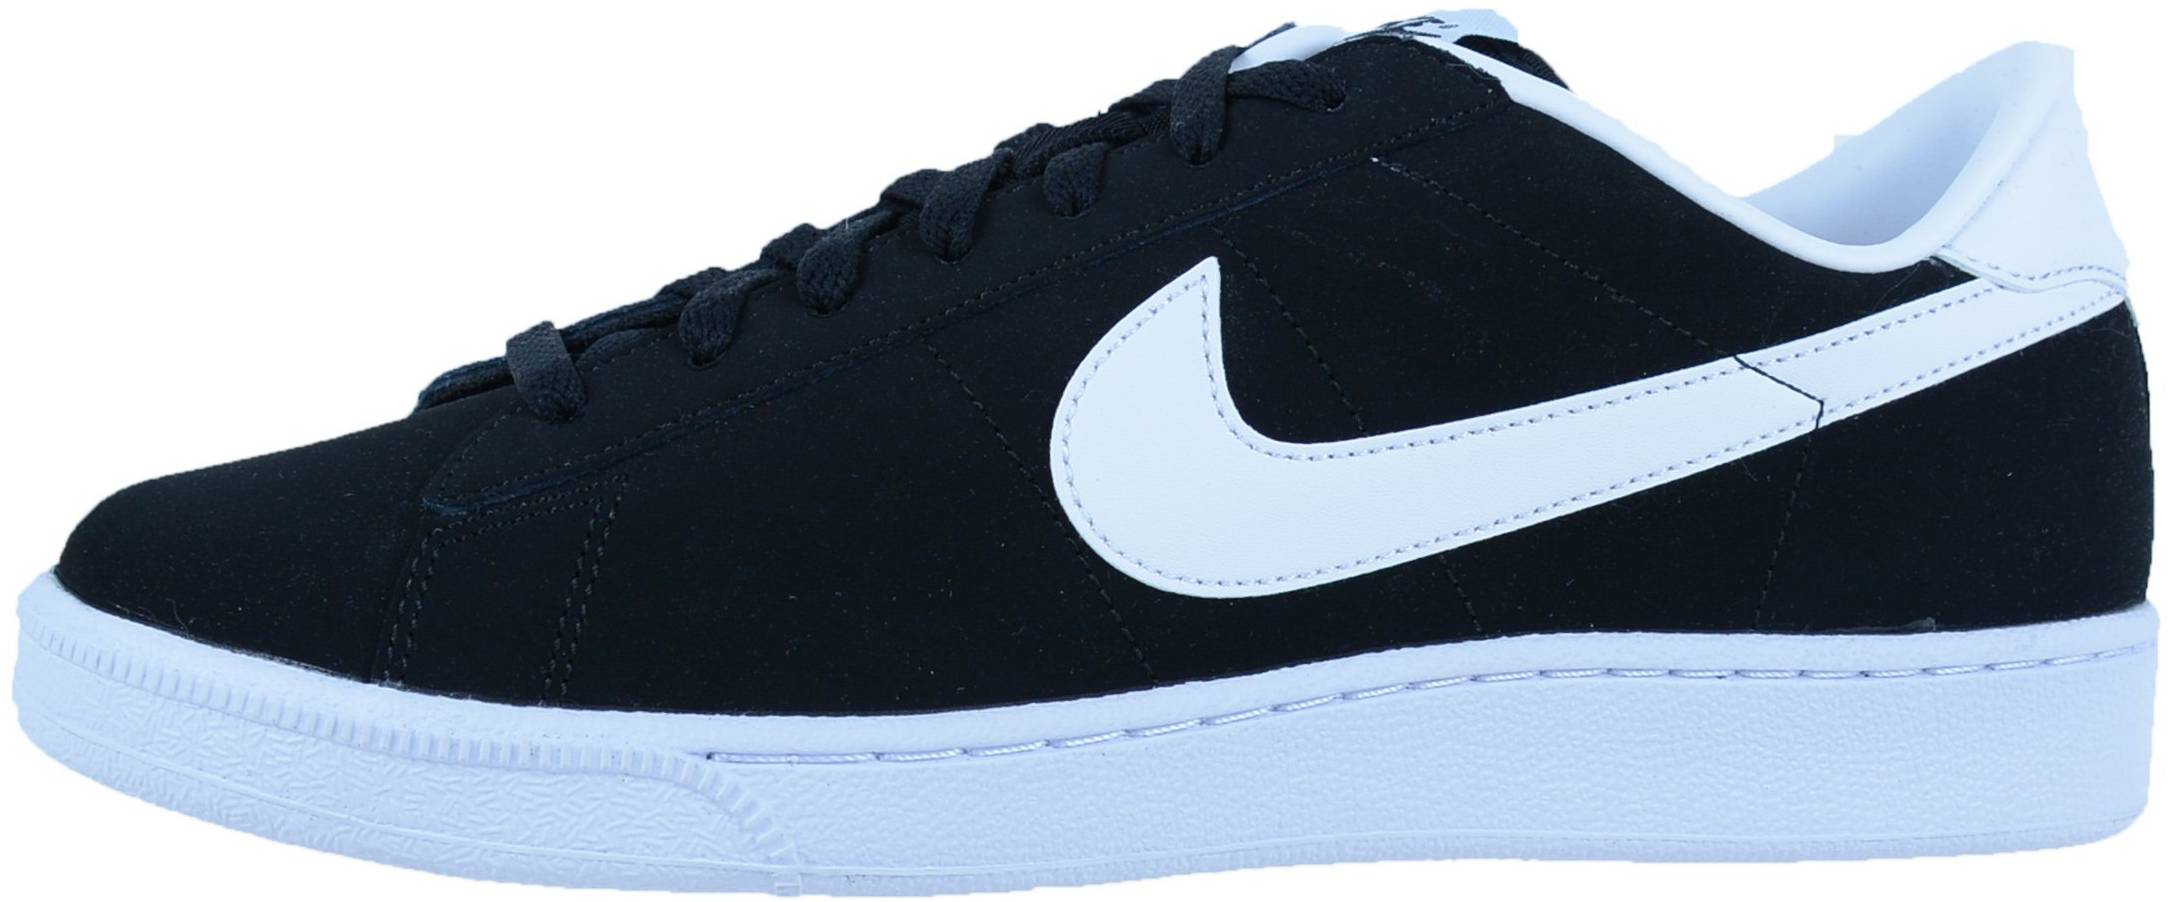 incondicional Retocar Sala  Only $73 + Review of Nike Tennis Classic | RunRepeat